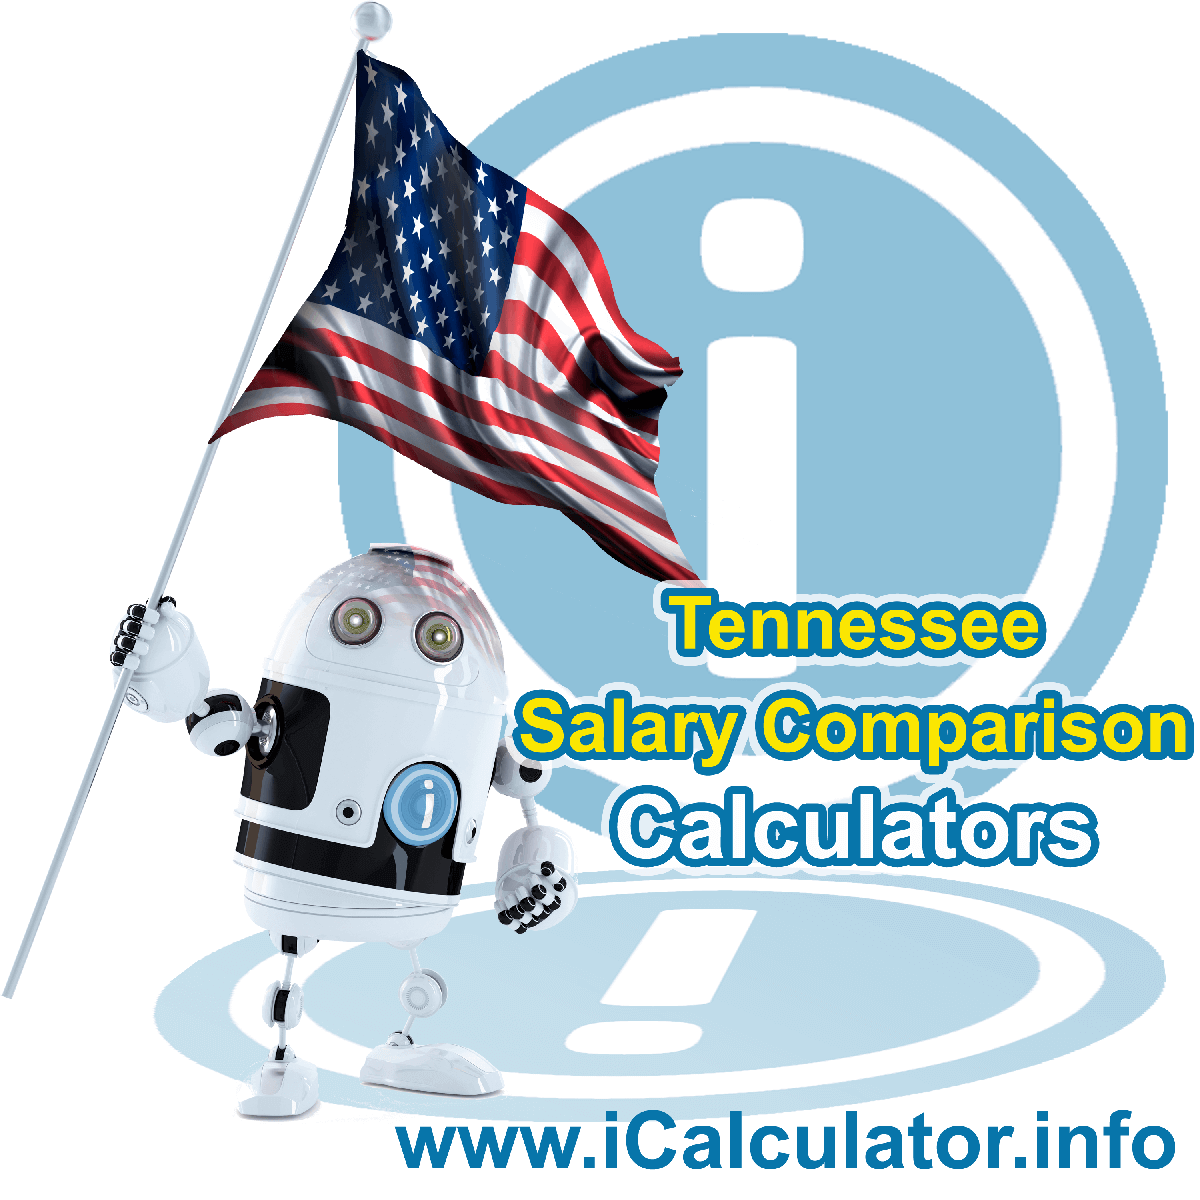 Tennessee Salary Comparison Calculator 2020 | iCalculator | The Tennessee Salary Comparison Calculator allows you to quickly calculate and compare upto 6 salaries in Tennessee or between other states for the 2020 tax year and historical tax years. Its an excellent tool for jobseekers, pay raise comparison and comparison of salaries between different US States